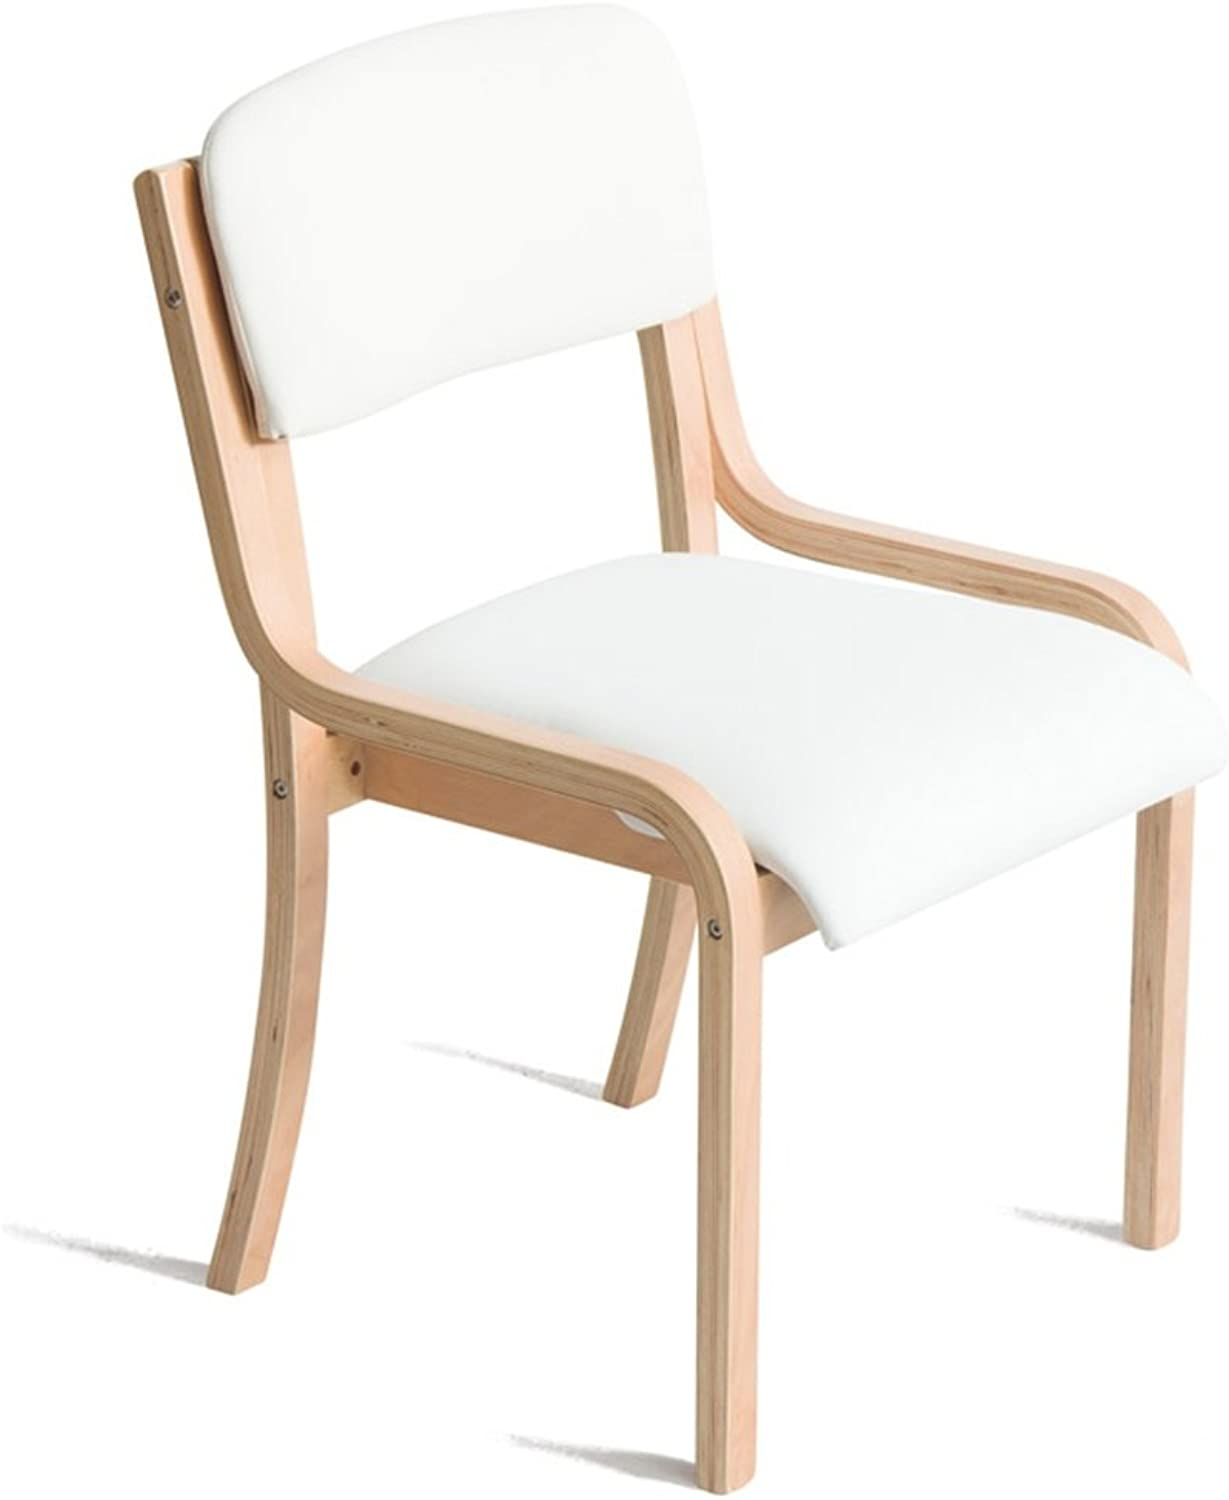 Wooden Chair Backrest That can be Used Desk Dining Makeup Learning Chair Home & Commercial Concise Style White